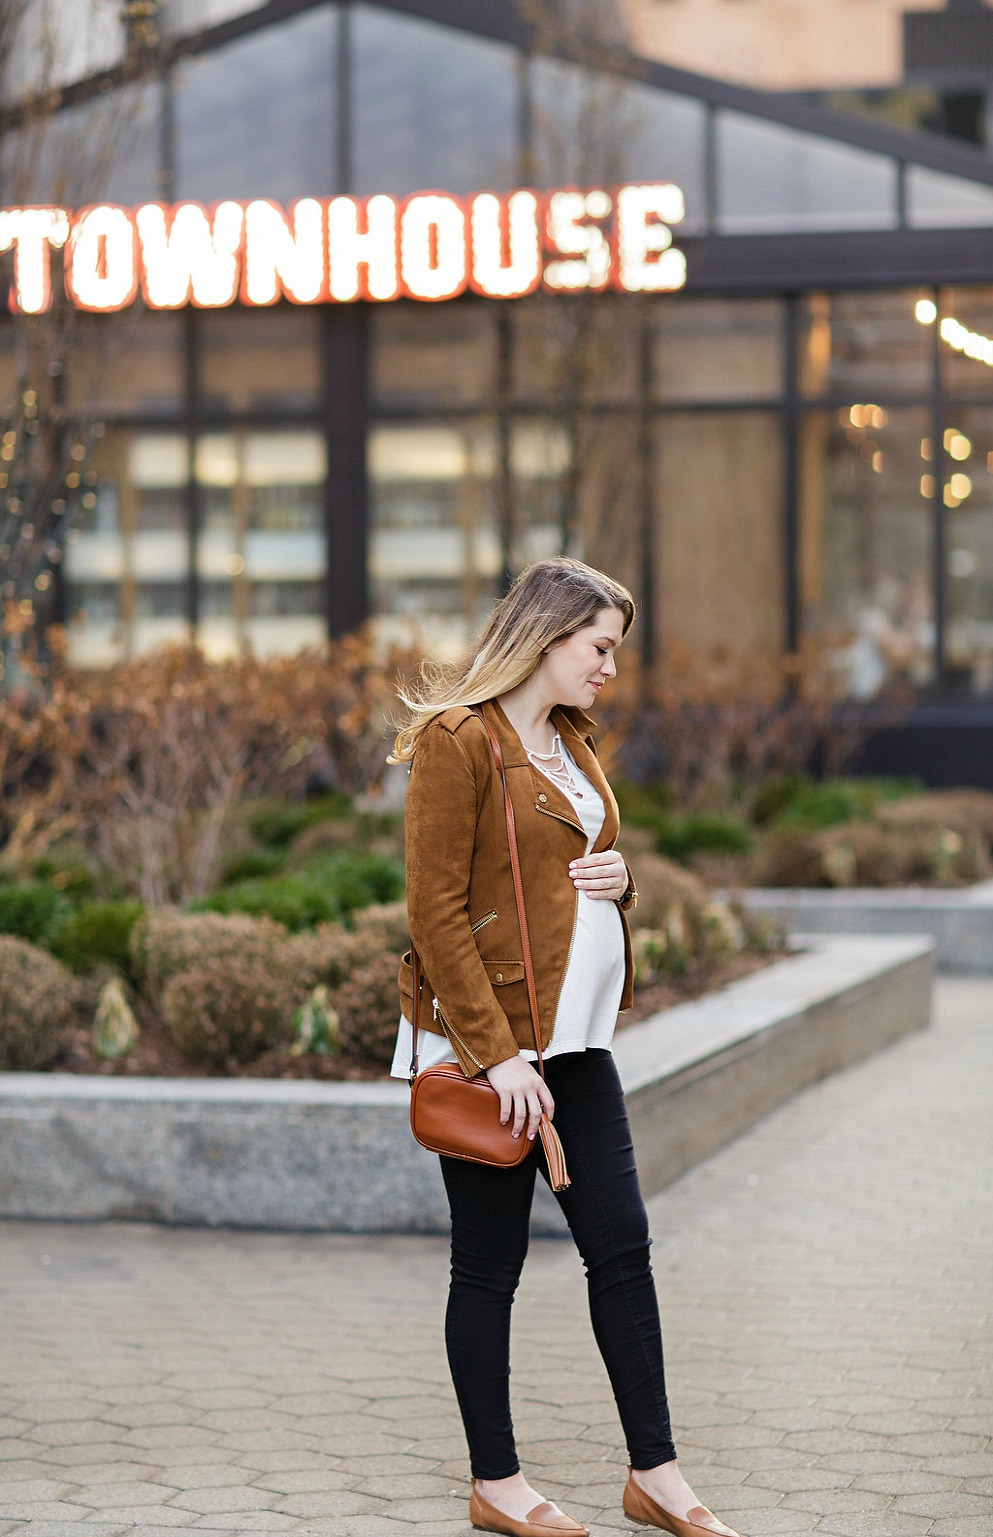 MATERNITY-STYLE-FASHION-PREGNANCY-ROSECITYSTYLEGUIDE-CANADIAN-BLOGGER-SUEDE-JACKET-OUTFIT-DETROIT